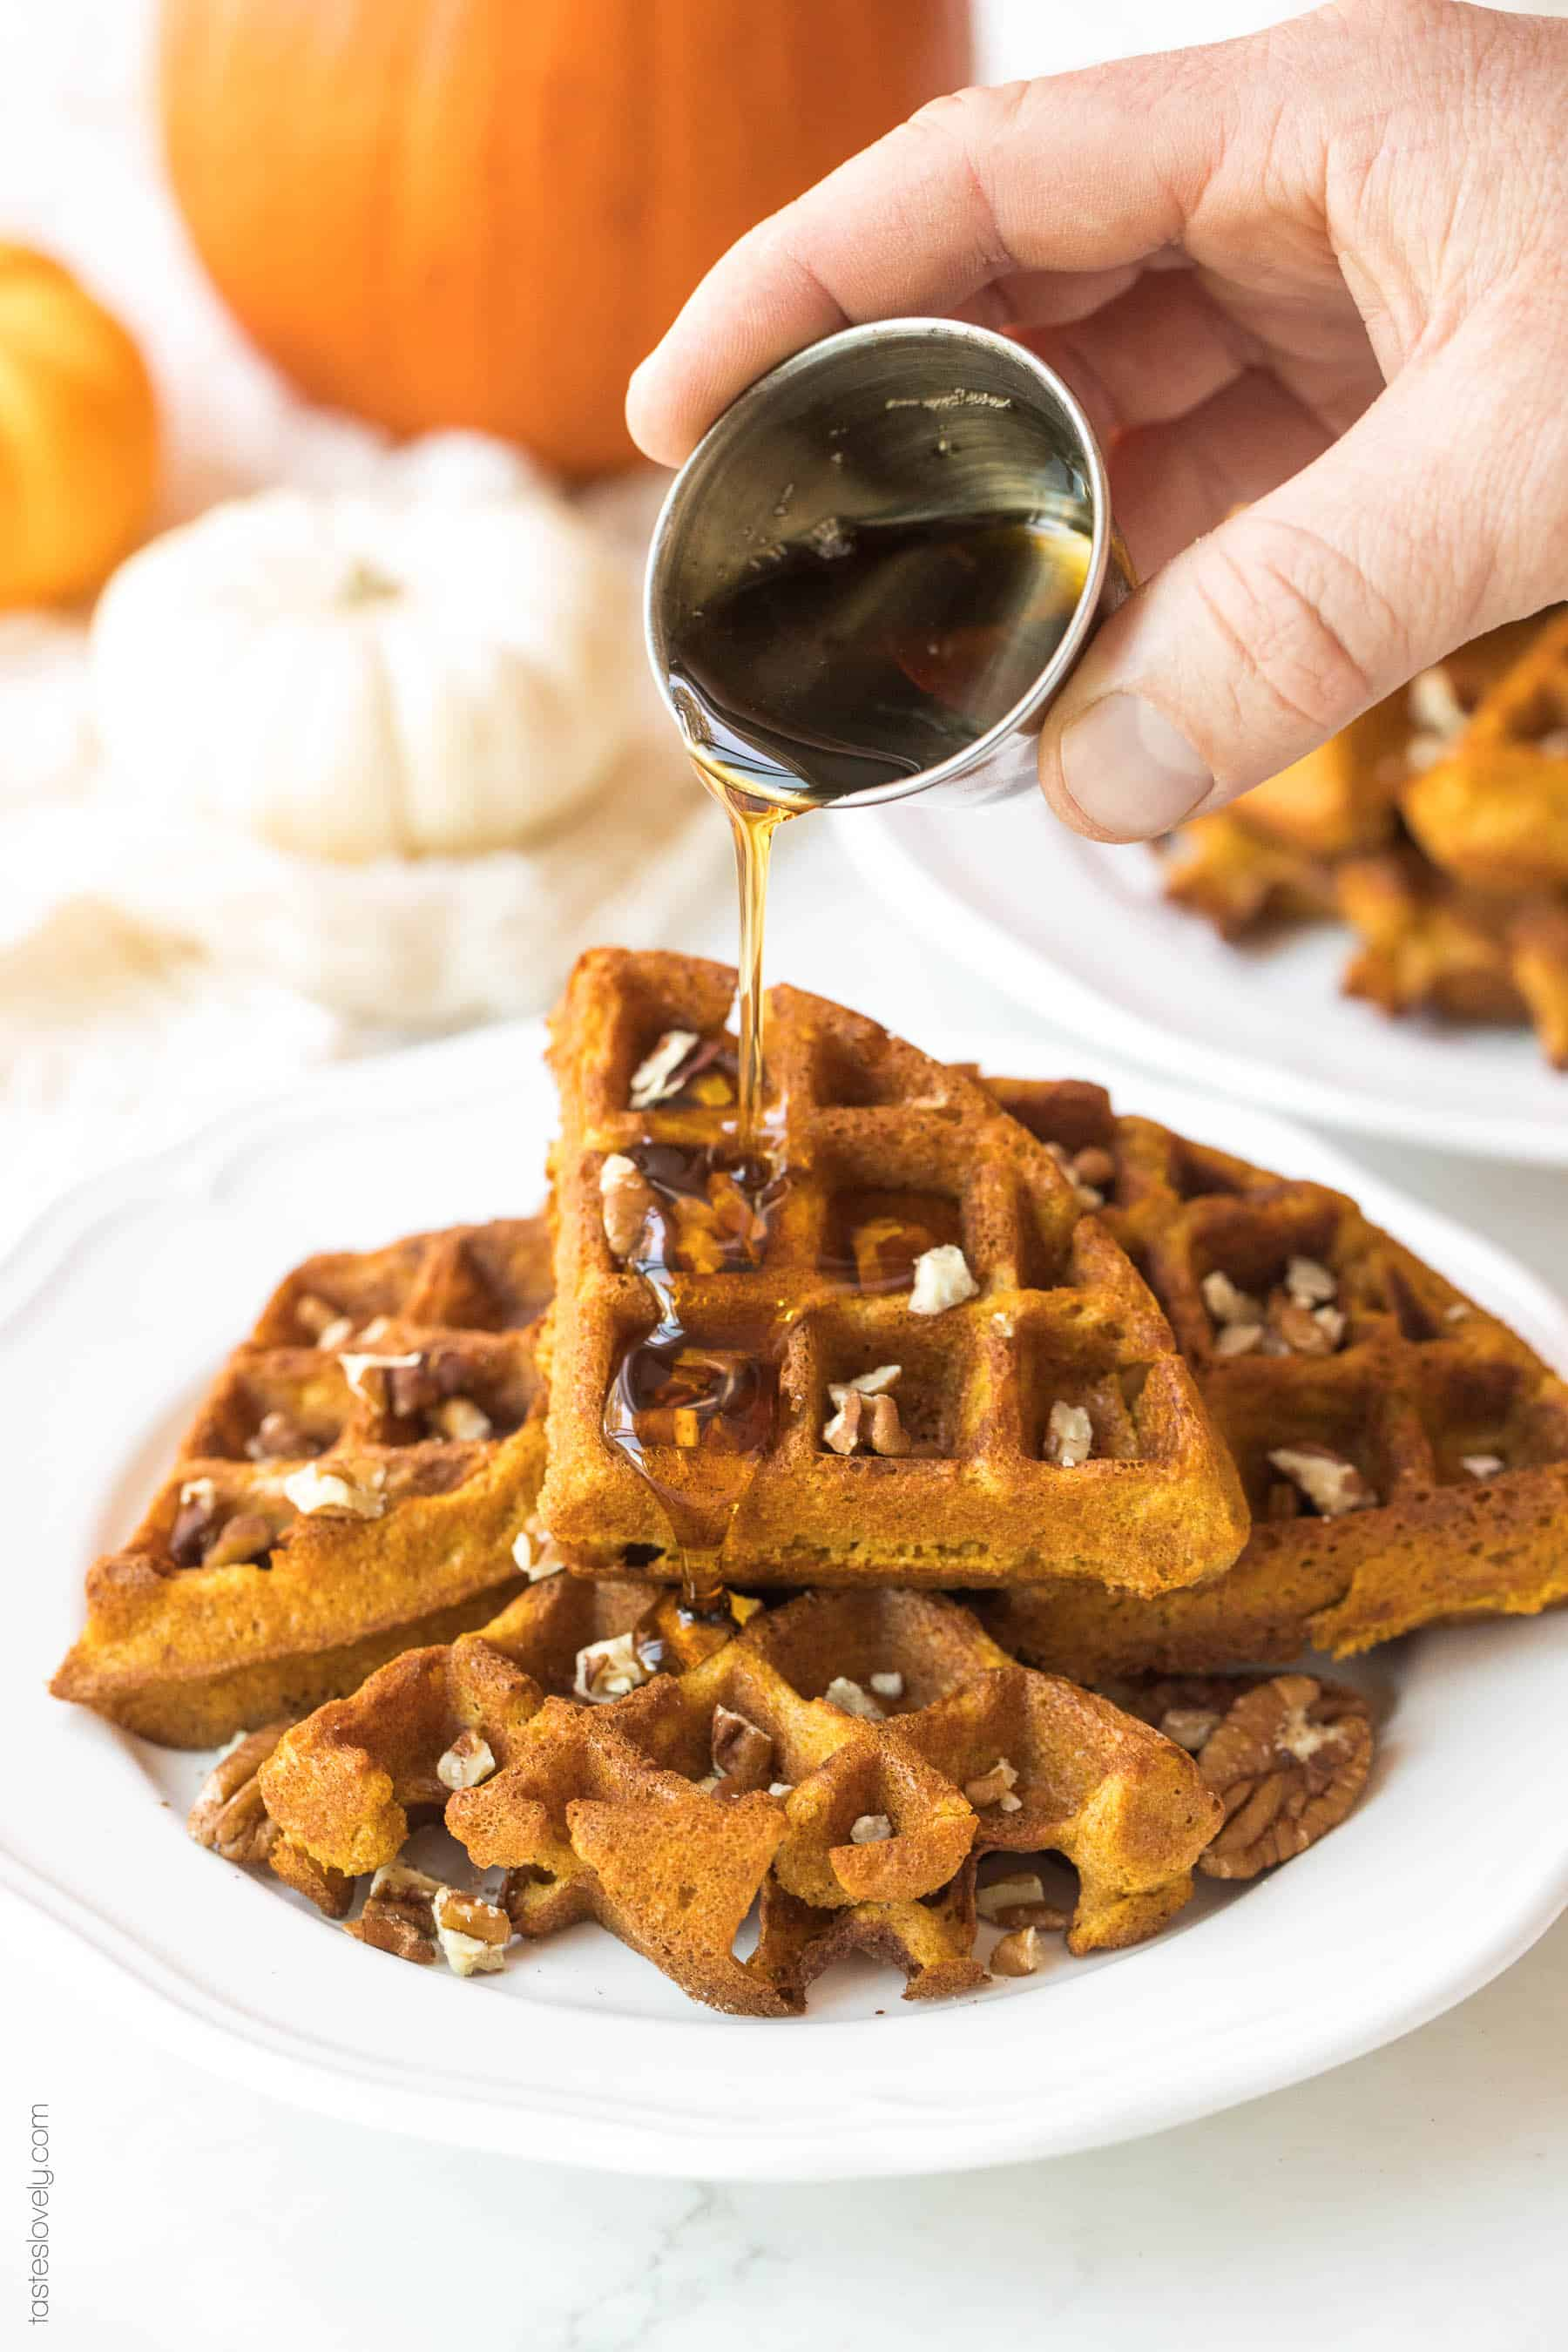 syrup being poured on top of pumpkin waffles